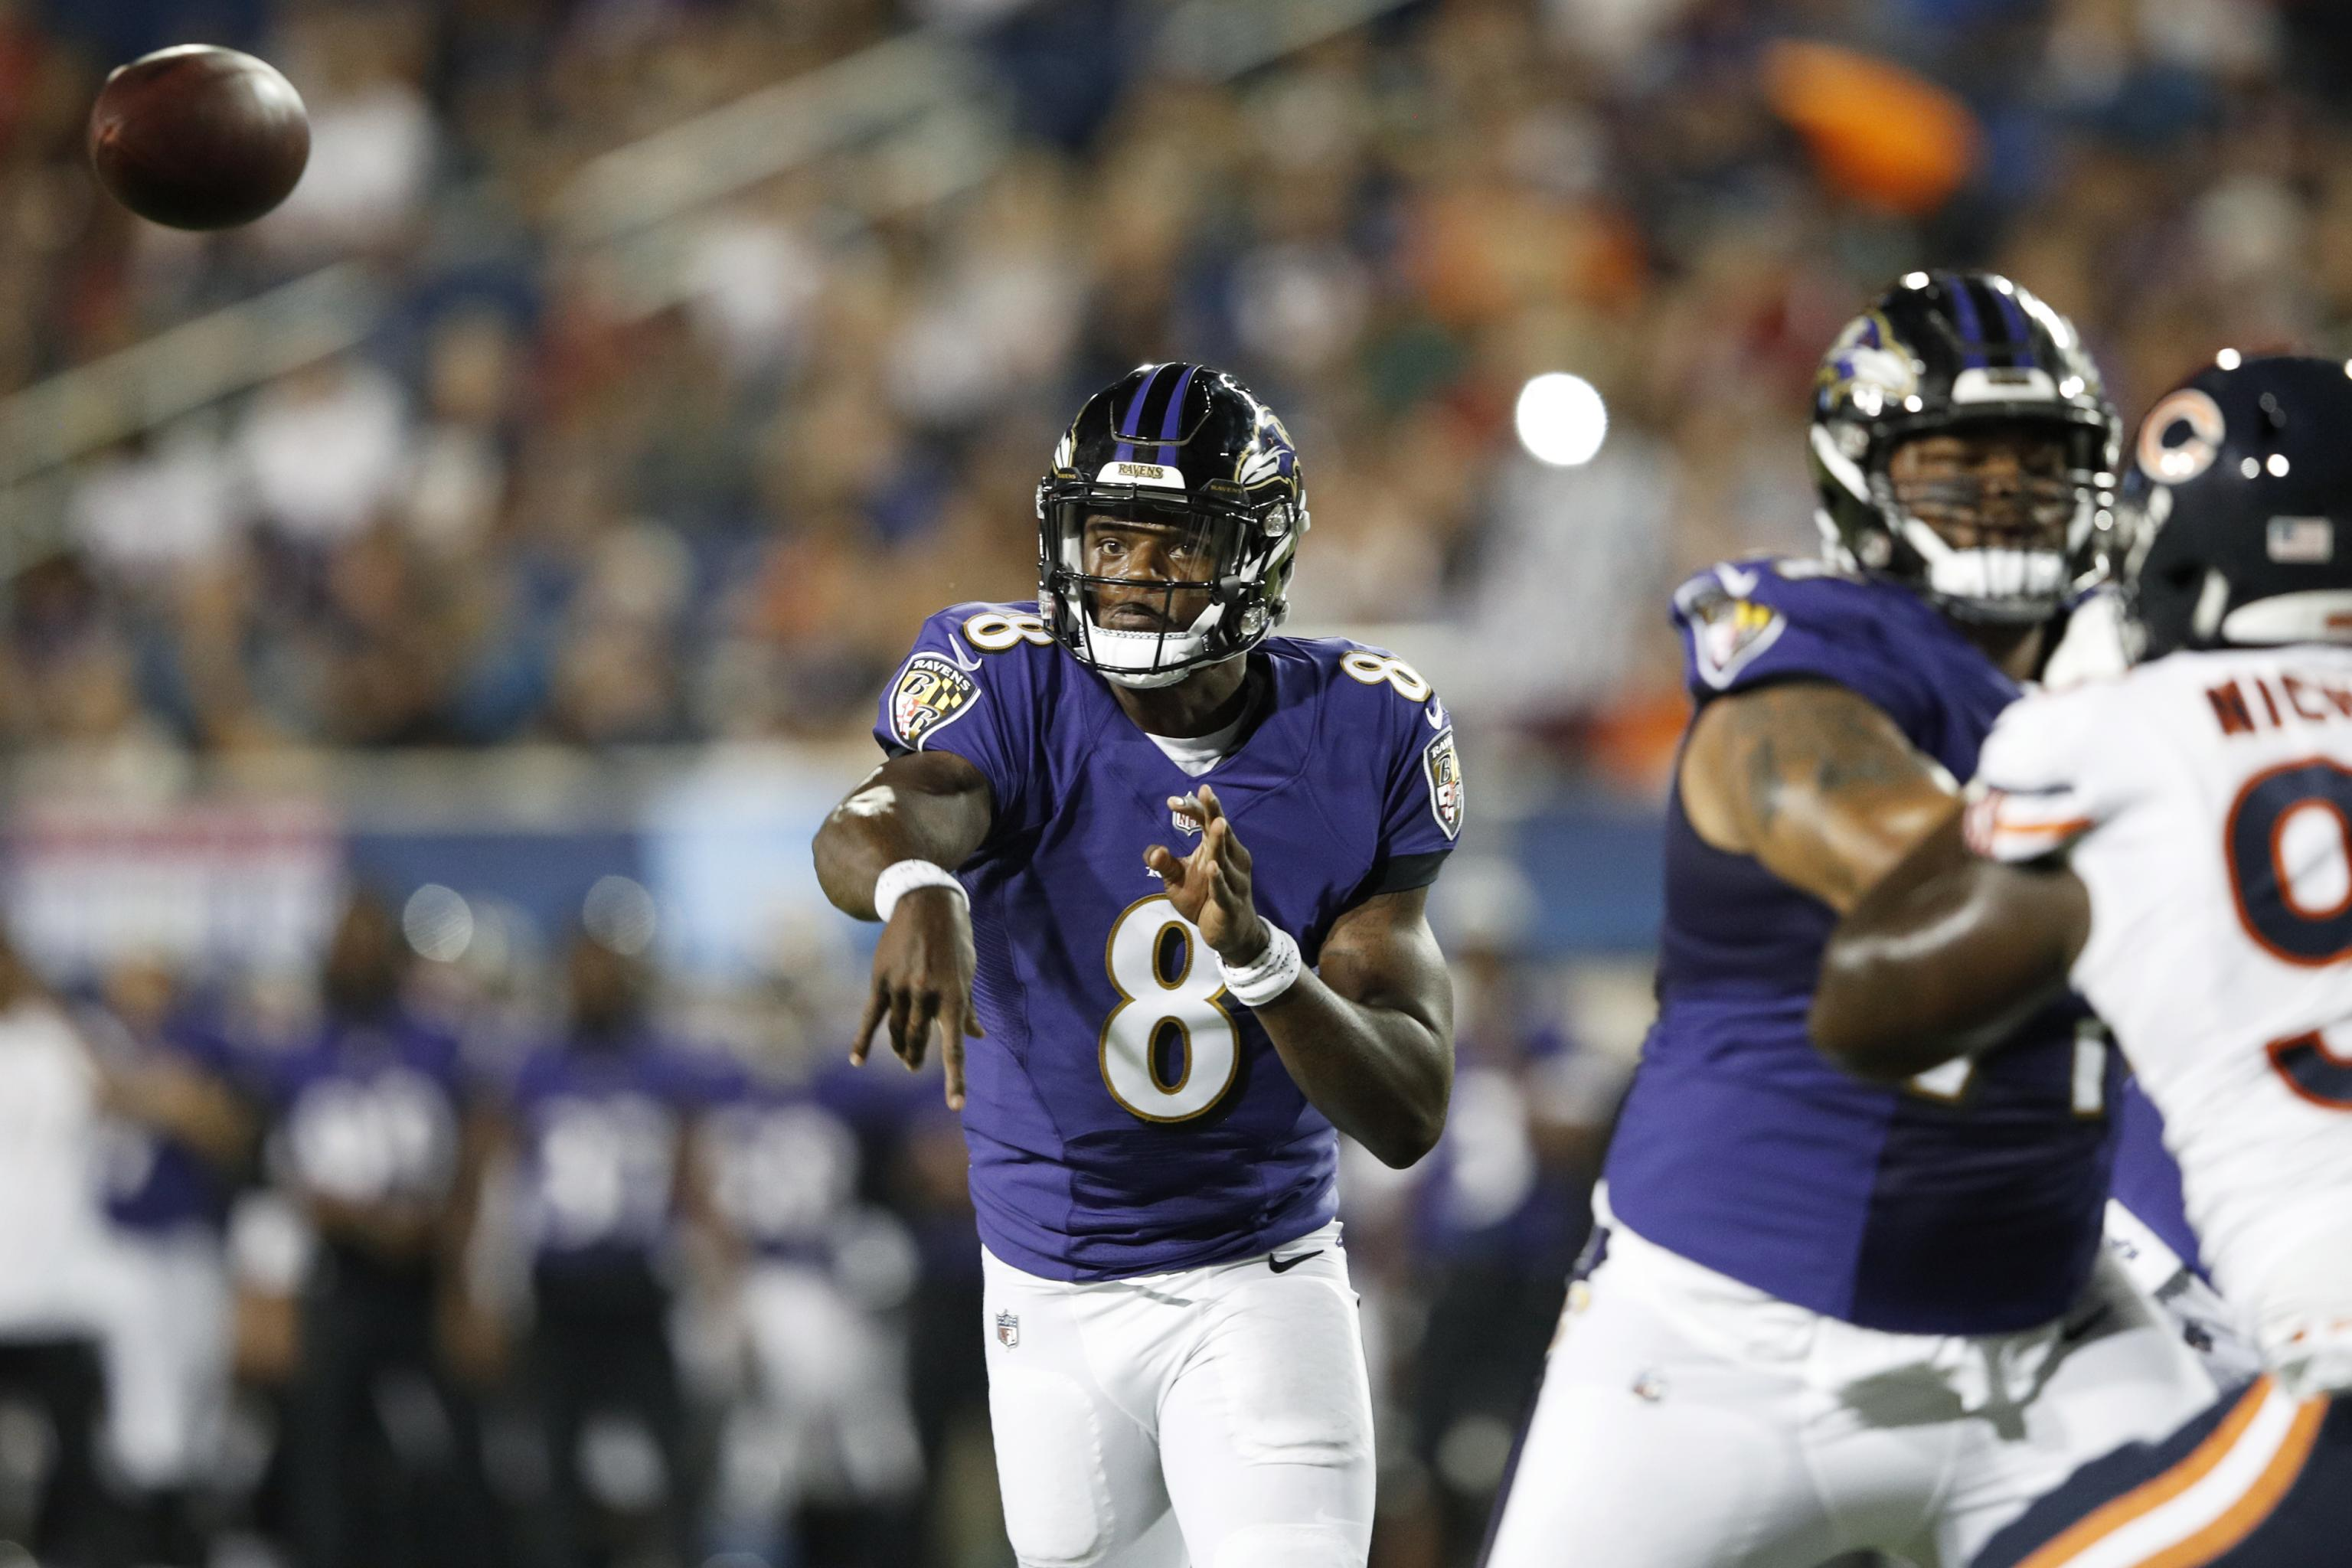 reputable site a7cfa eb802 Lamar Jackson, Ravens Hang on to Beat Bears in 2018 Hall of ...